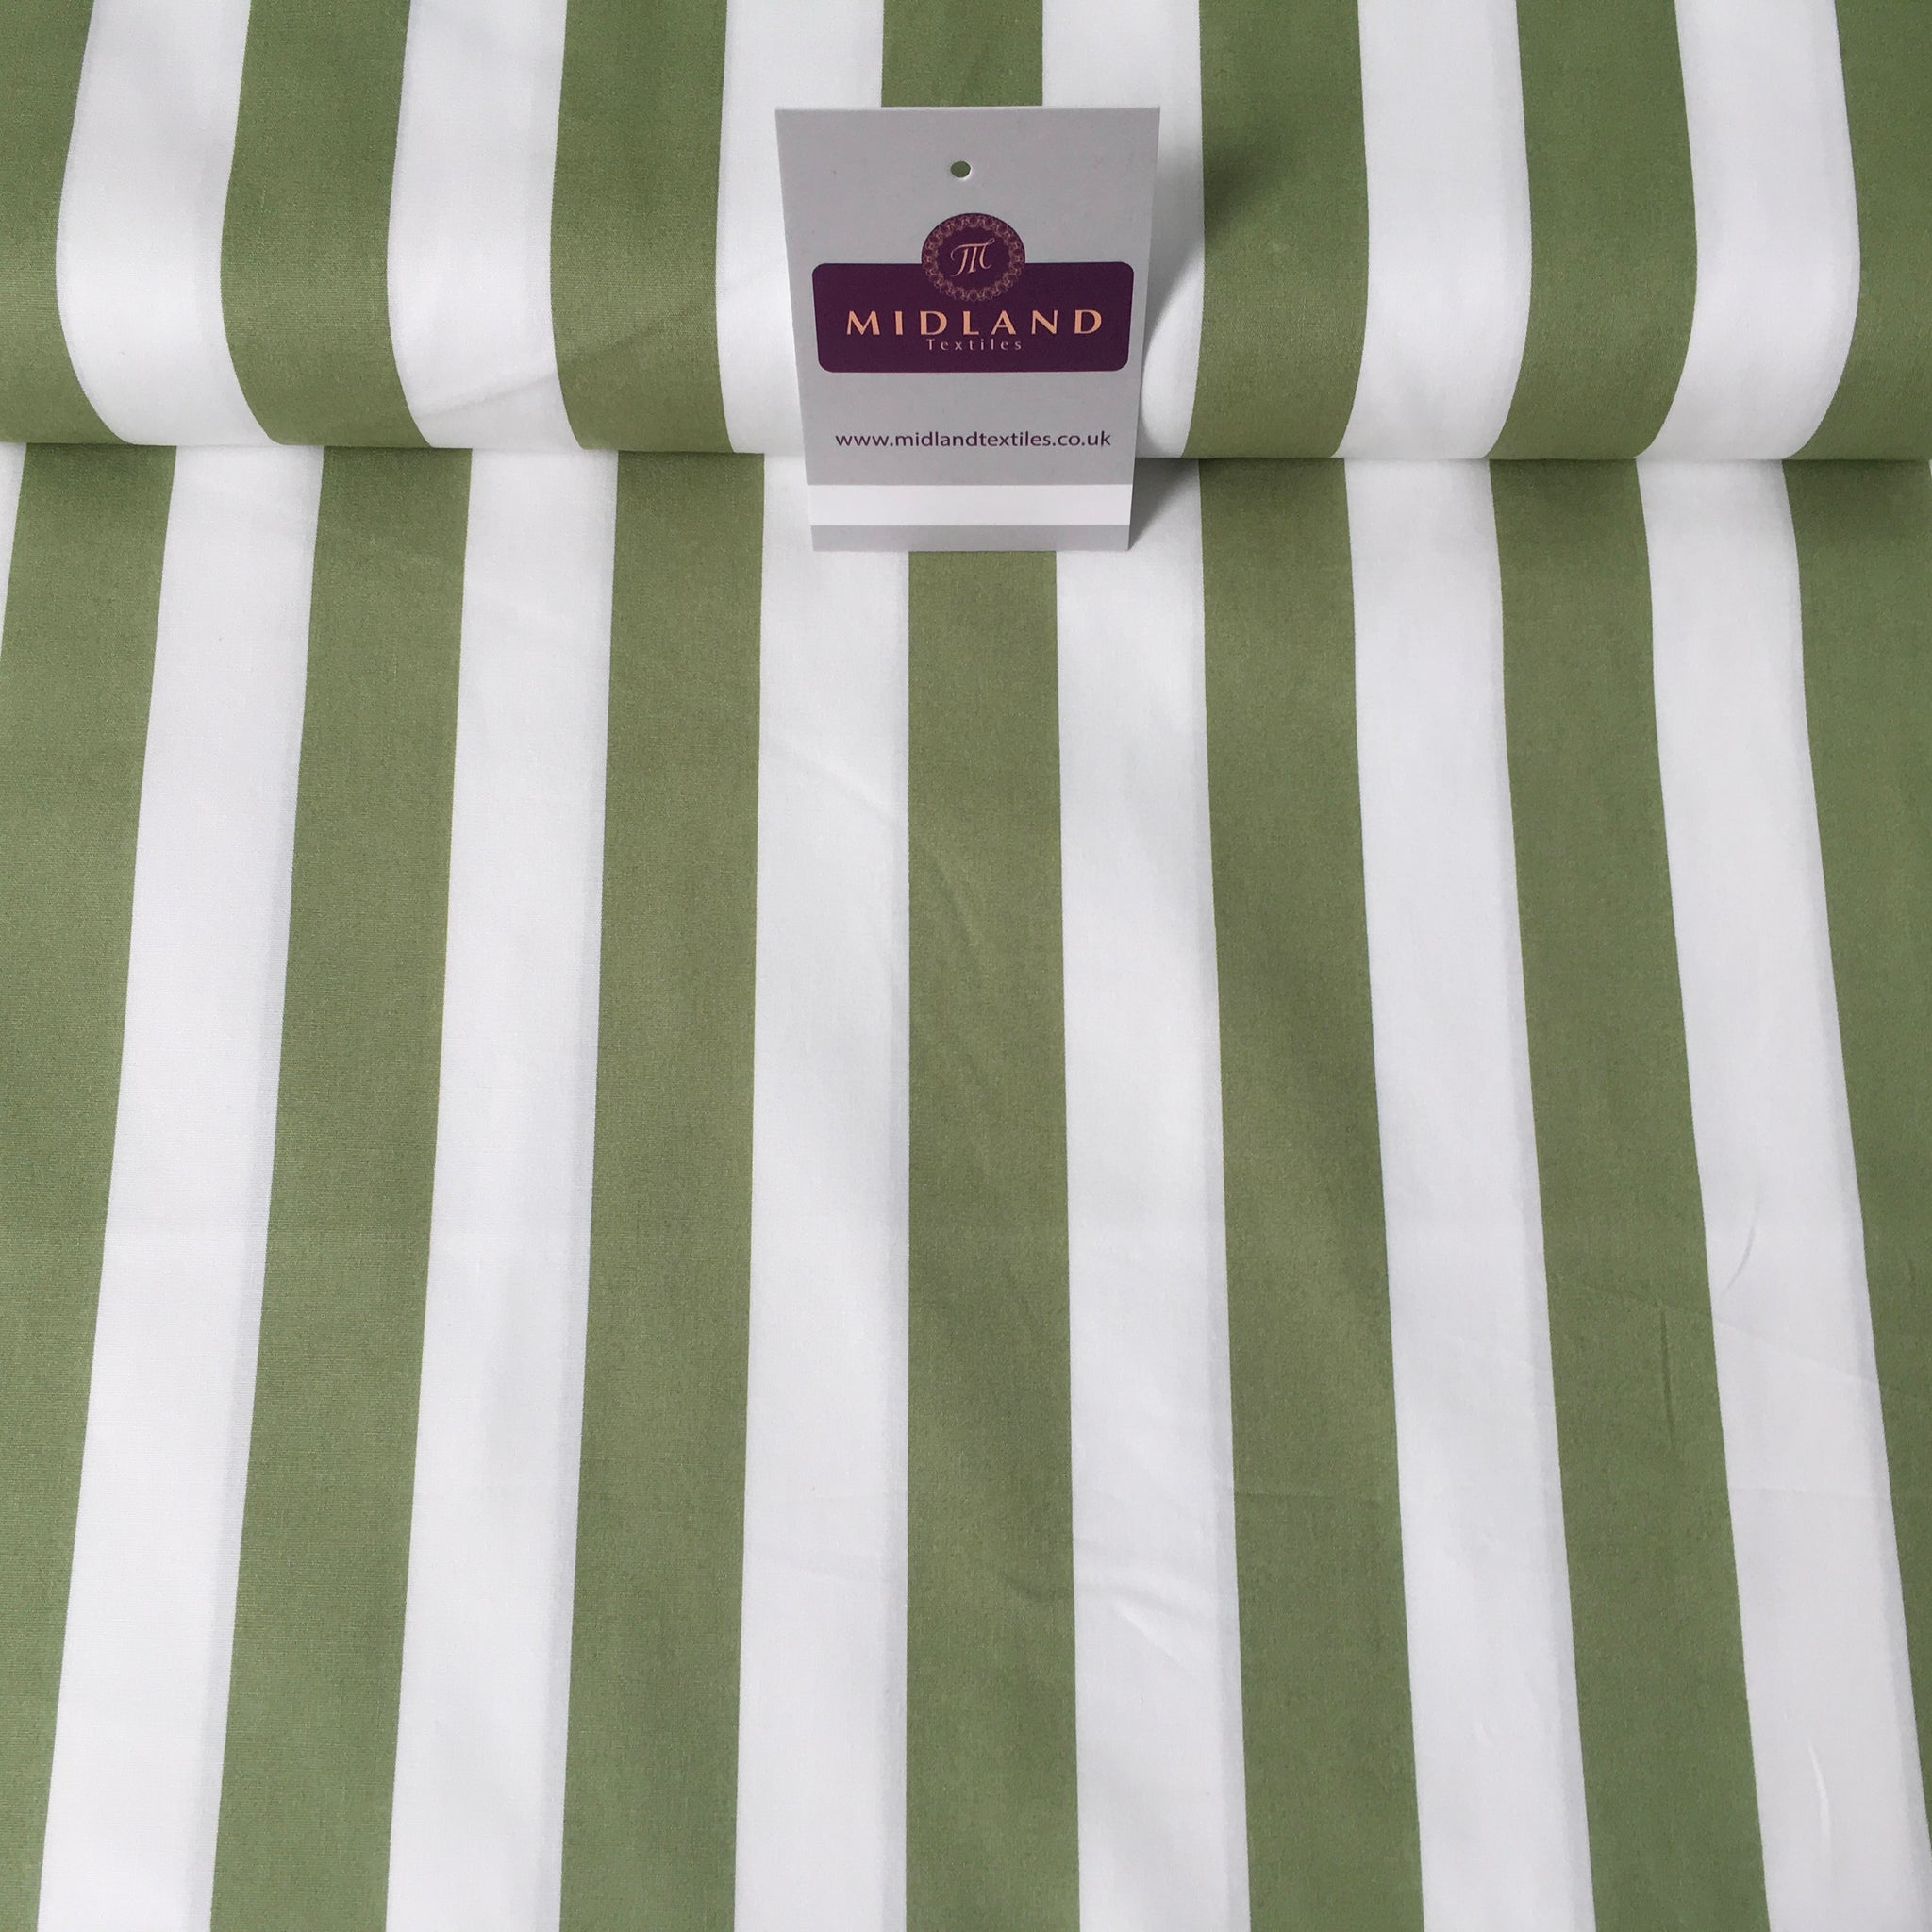 "2.5cm Candy Stripped Cotton Poplin shirting, dress Fabric 44"" wide MK898 Mtex"